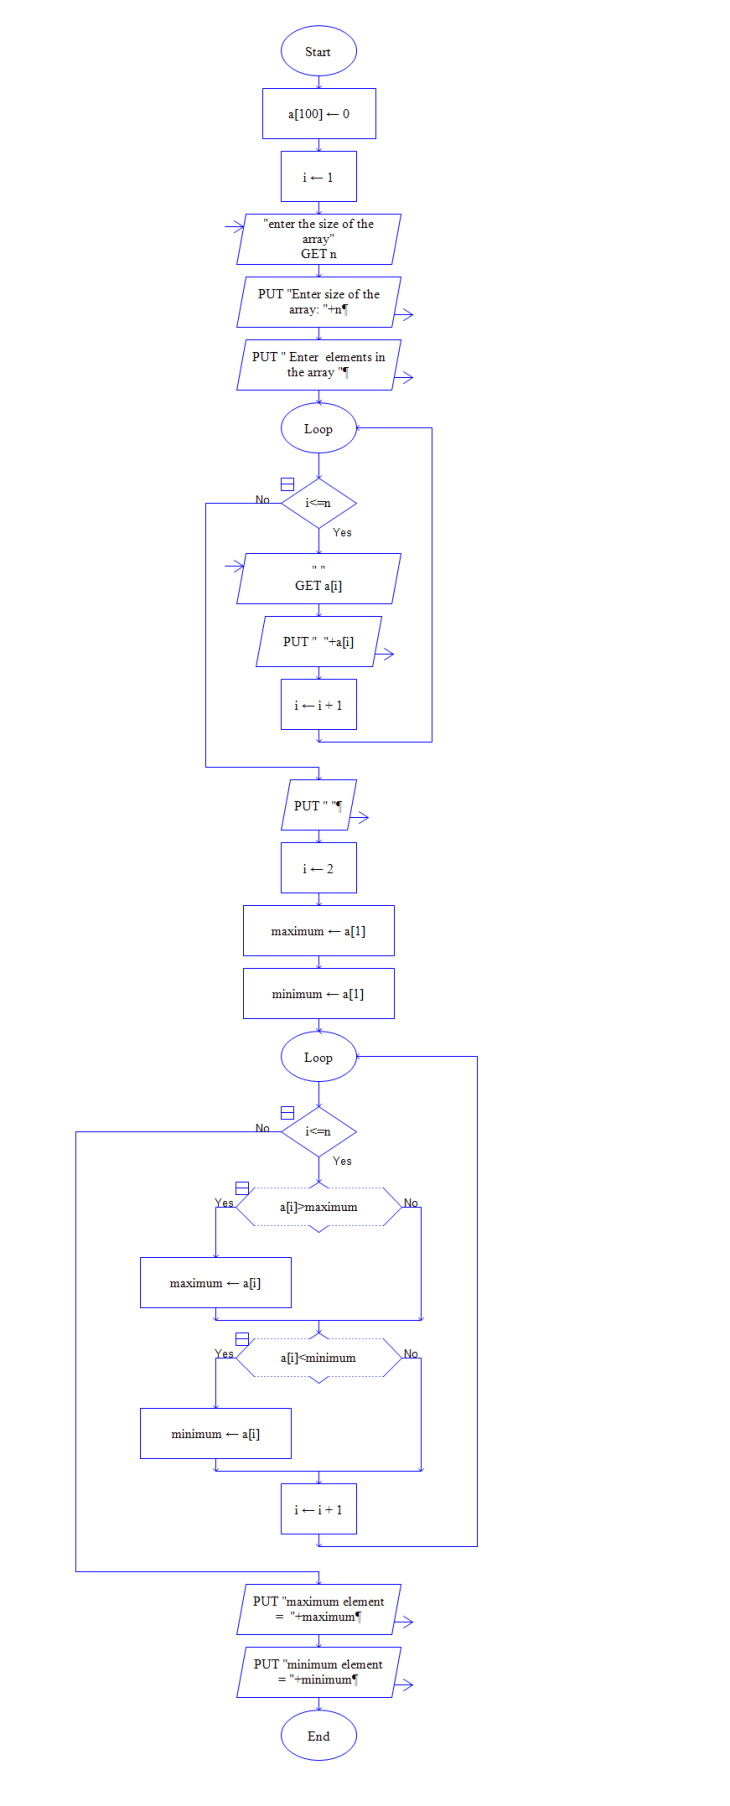 Flowchart to find largest element in an array in python